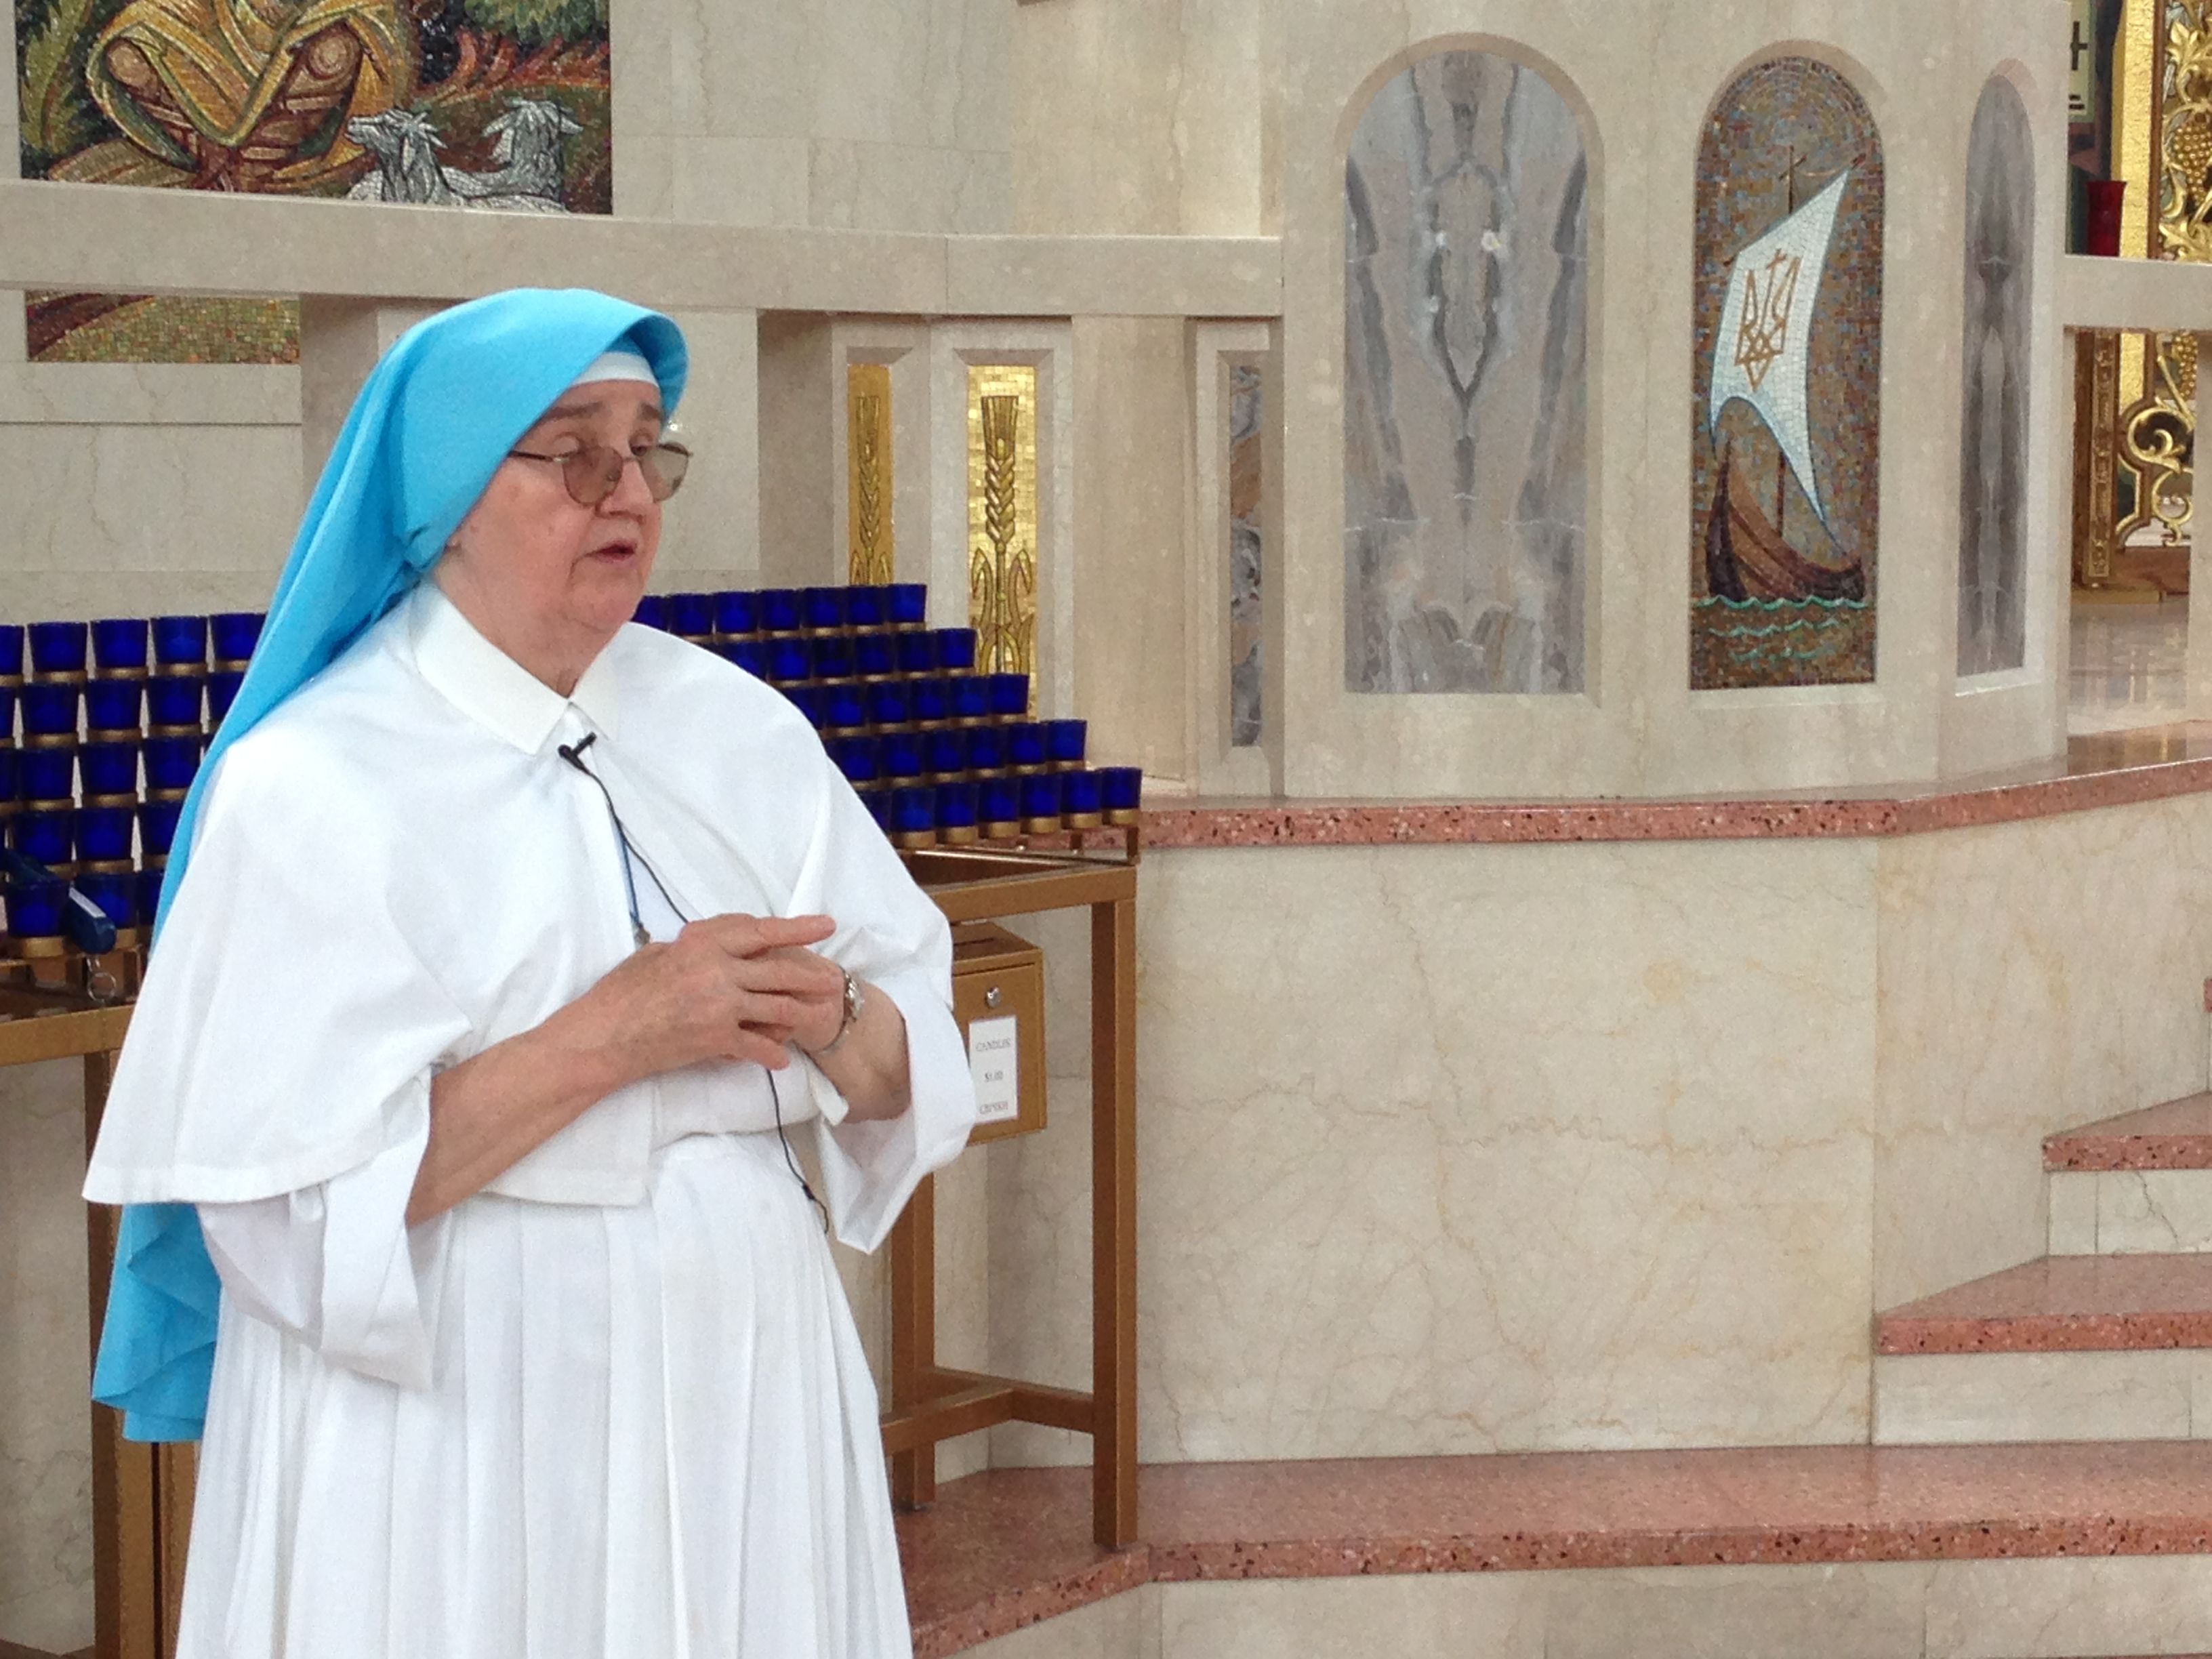 Sister Evhenia Prusnay in the Ukrainian Catholic Cathedral of the Immaculate Conception during a tour.